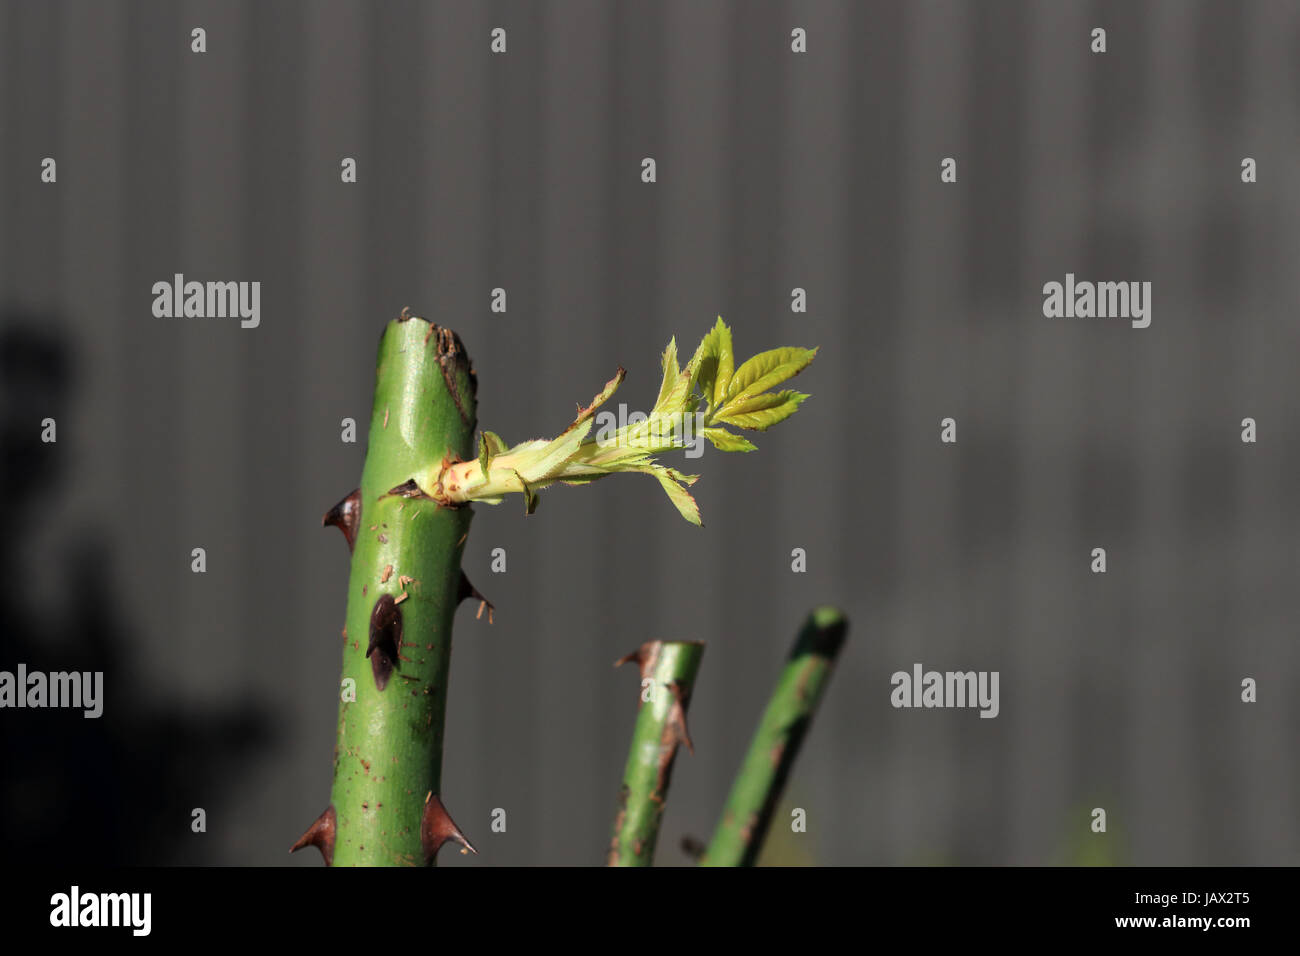 New shoots growing from rose cuttings - Stock Image